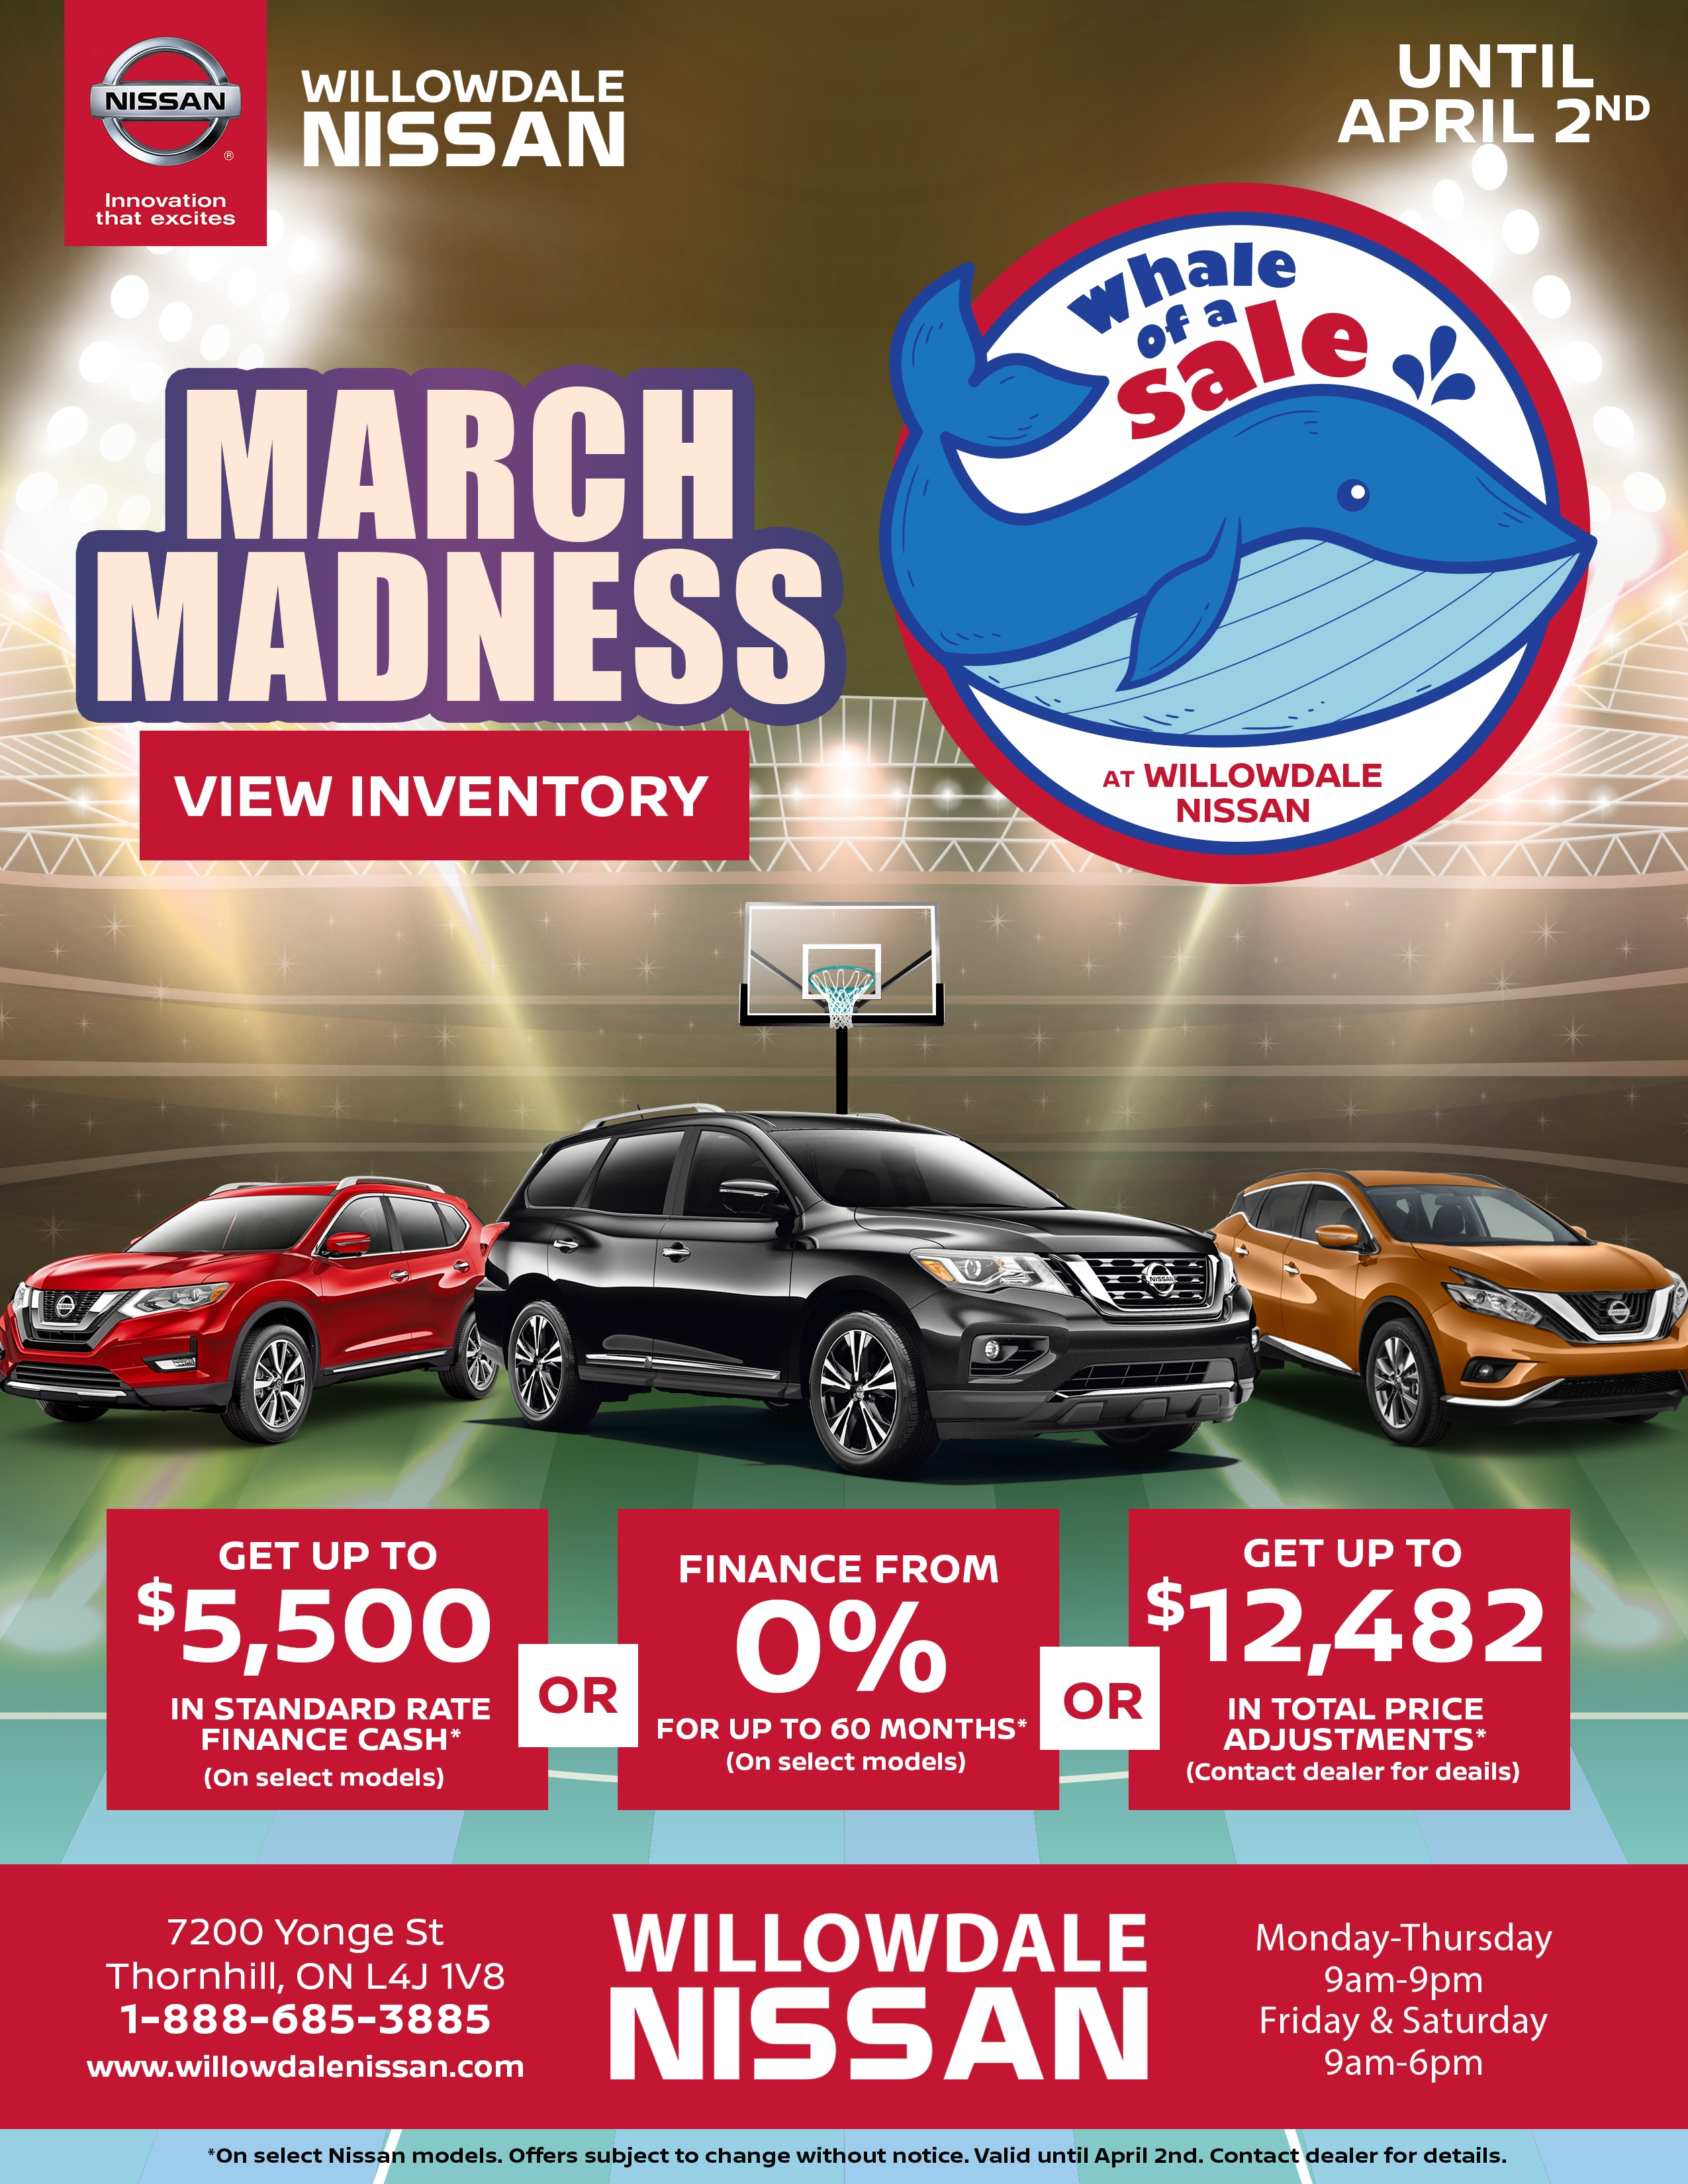 nissan auto specials all conditions new show offers event bonus used htm conquer